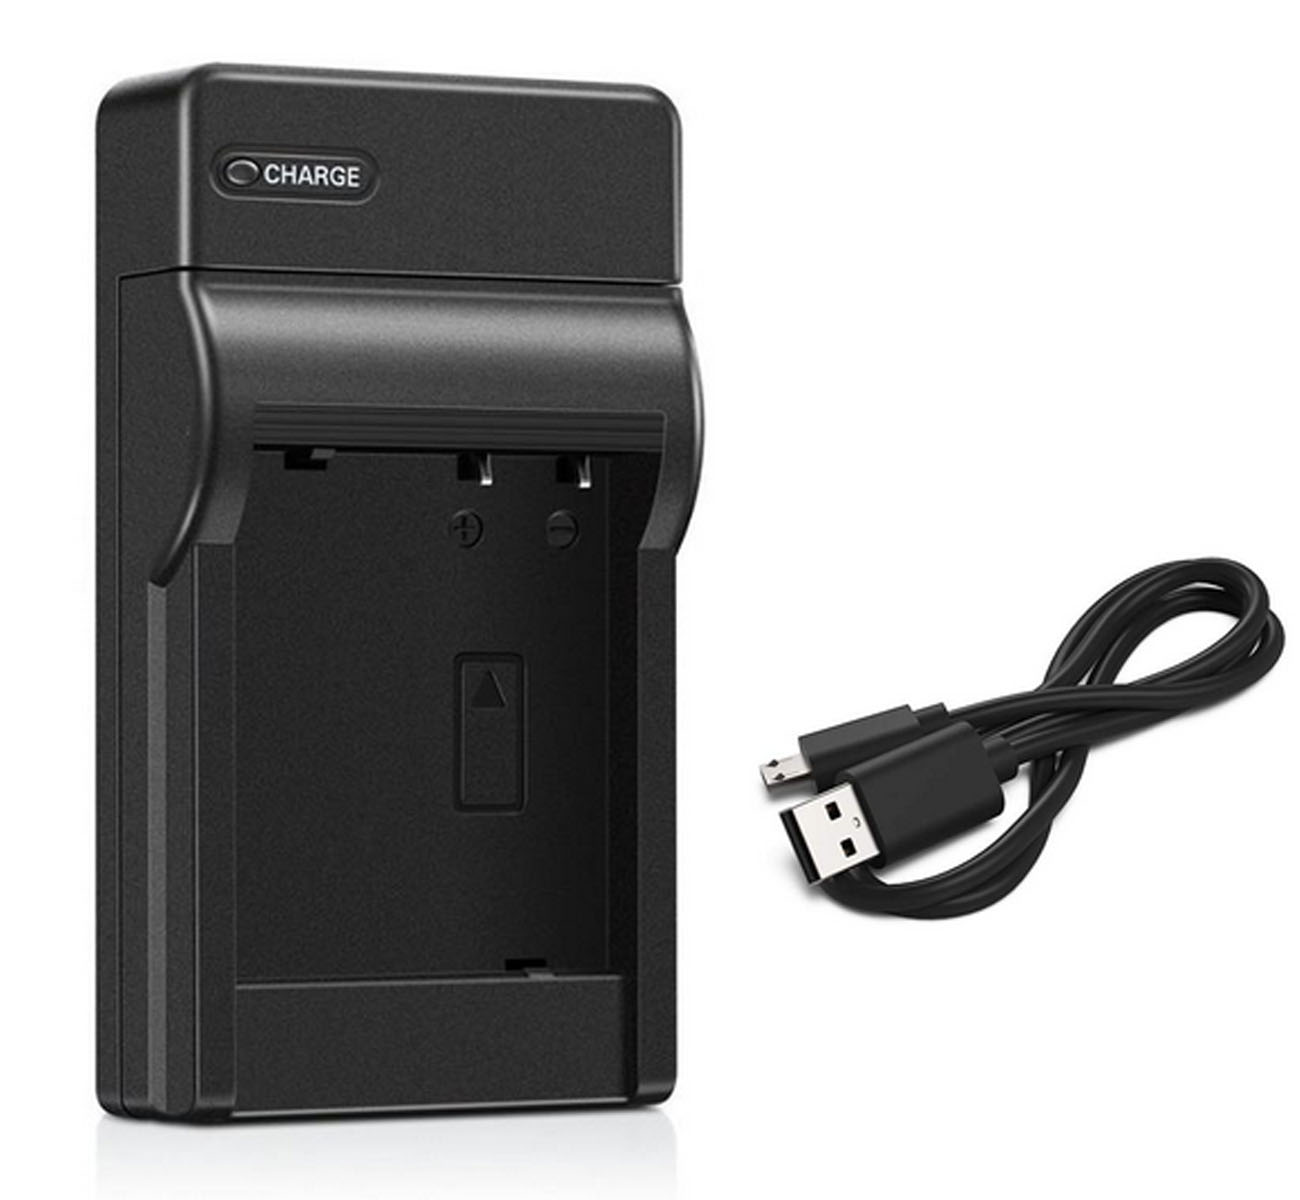 NV-GS21 NV-GS25 NV-GS22 NV-GS27 Camcorder LCD USB Battery Charger for Panasonic NV-GS10 NV-GS17